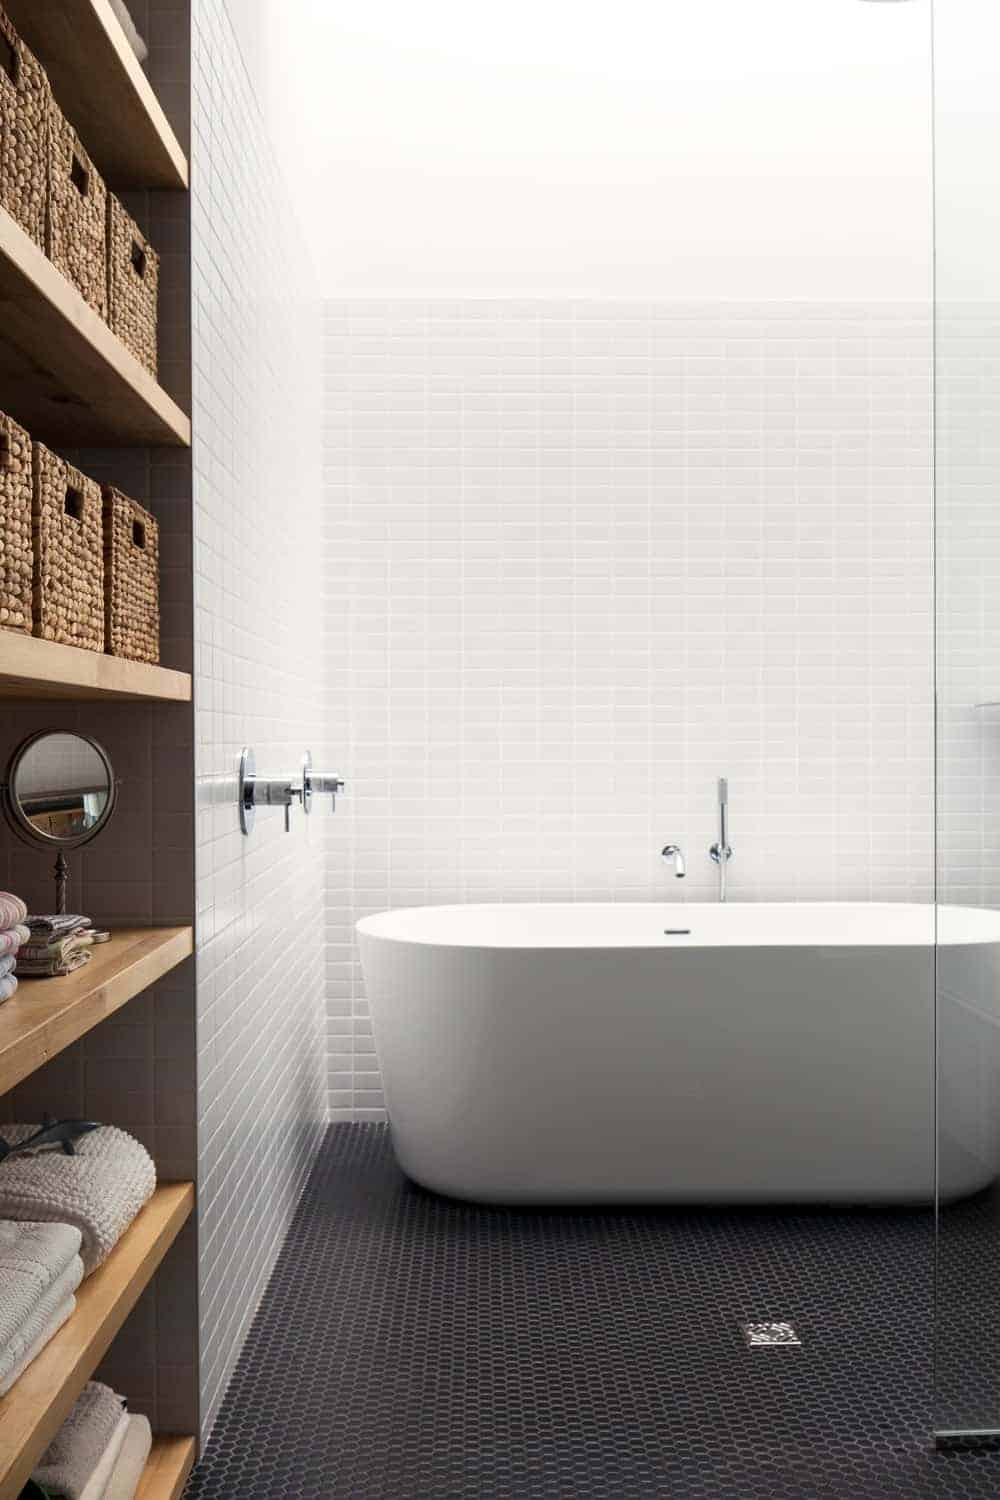 Modern bathroom with a freestanding tub placed against the white subway tile backsplash that's beautifully contrasted by black hex tile flooring. There's built-in shelving on the side filled with storage boxes and towels.